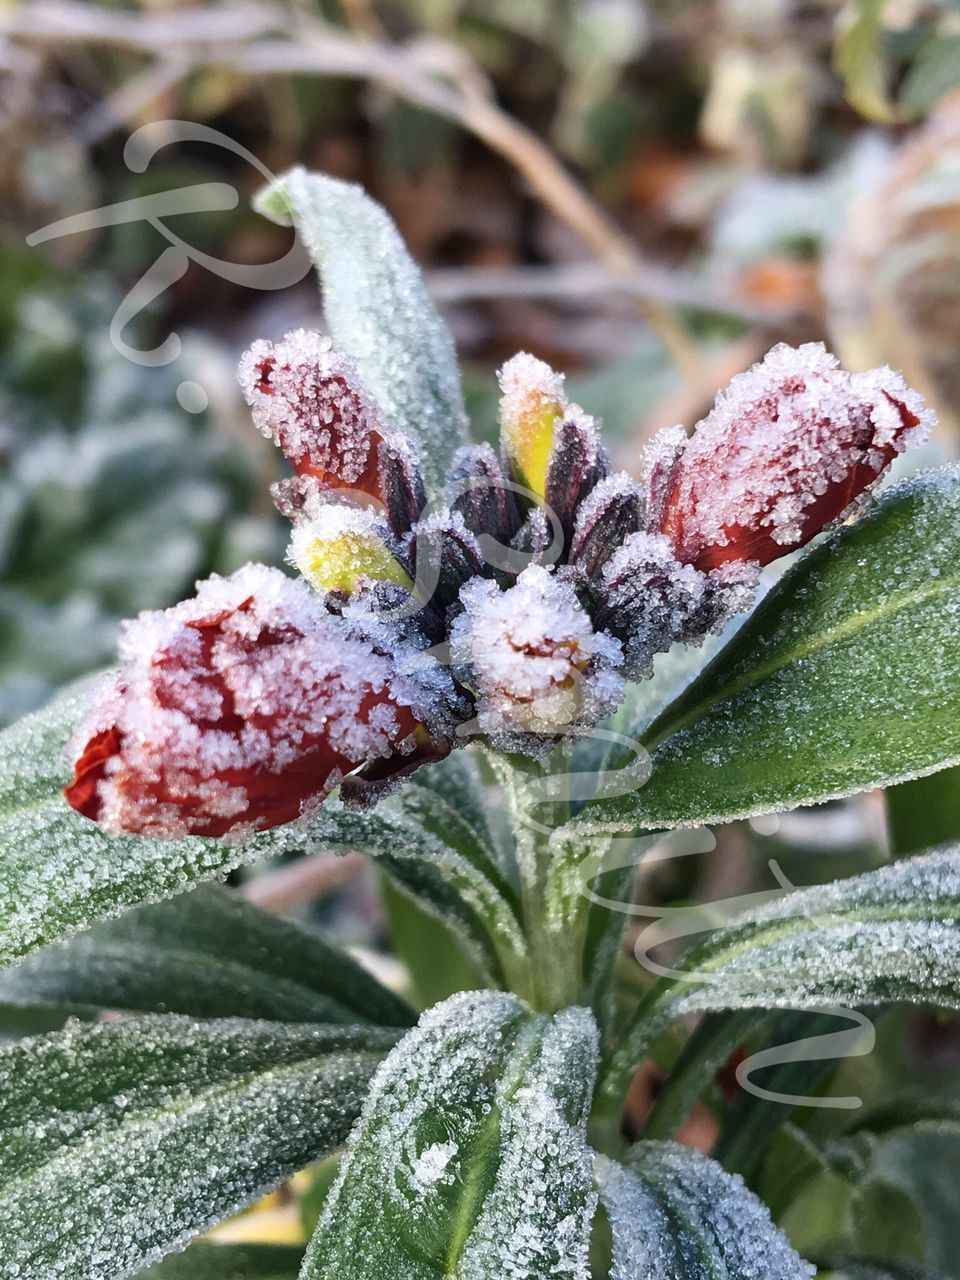 cold temperature, snow, winter, nature, frozen, plant, weather, frost, ice, outdoors, beauty in nature, day, close-up, leaf, growth, no people, fragility, freshness